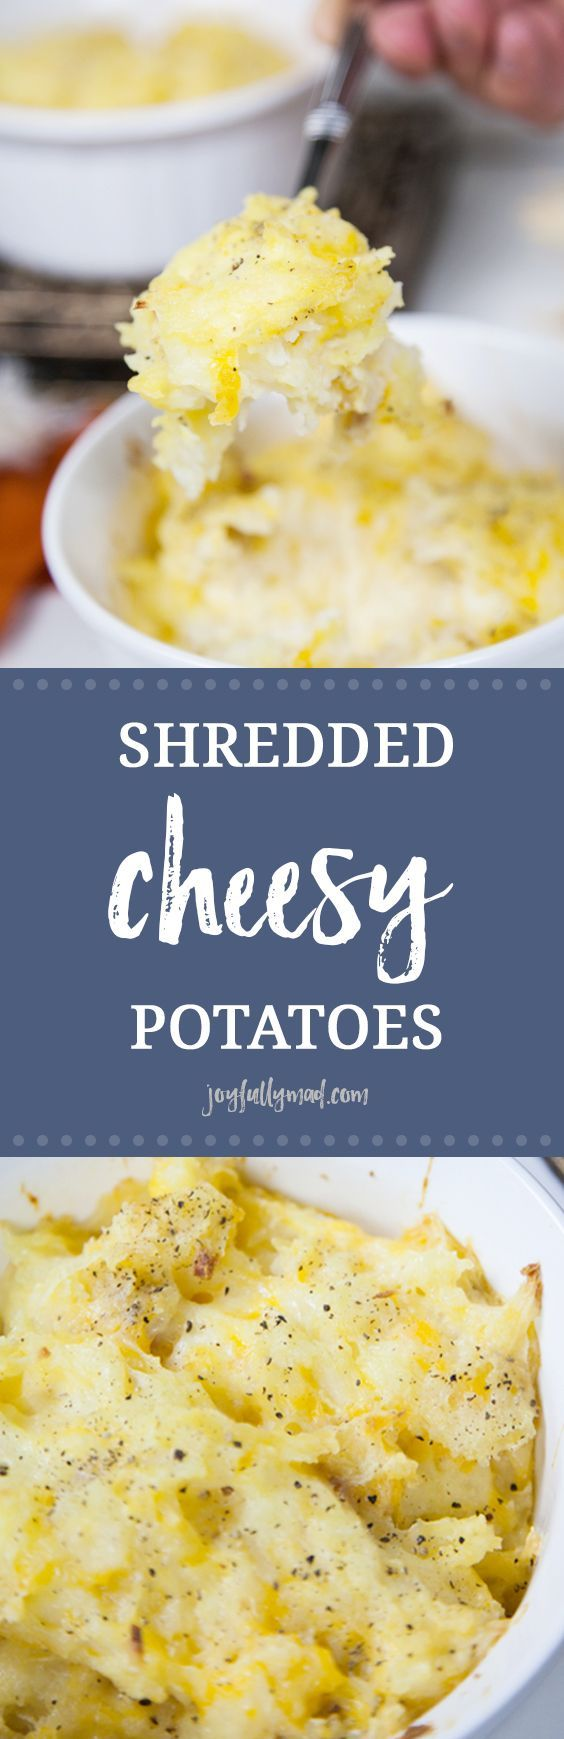 This recipe for Shredded Cheesy Potatoes is the perfect side dish for all of your holiday parties and family get togethers! These shredded cheesy potatoes are the perfect mashed potato alternative for Thanksgiving, Christmas or just because. The potatoes are cooked to perfection then shredded by hand and mixed with sour cream, cream of chicken soup and lots of shredded cheese for a side dish that is filly with yumminess!  via @joyfullymad